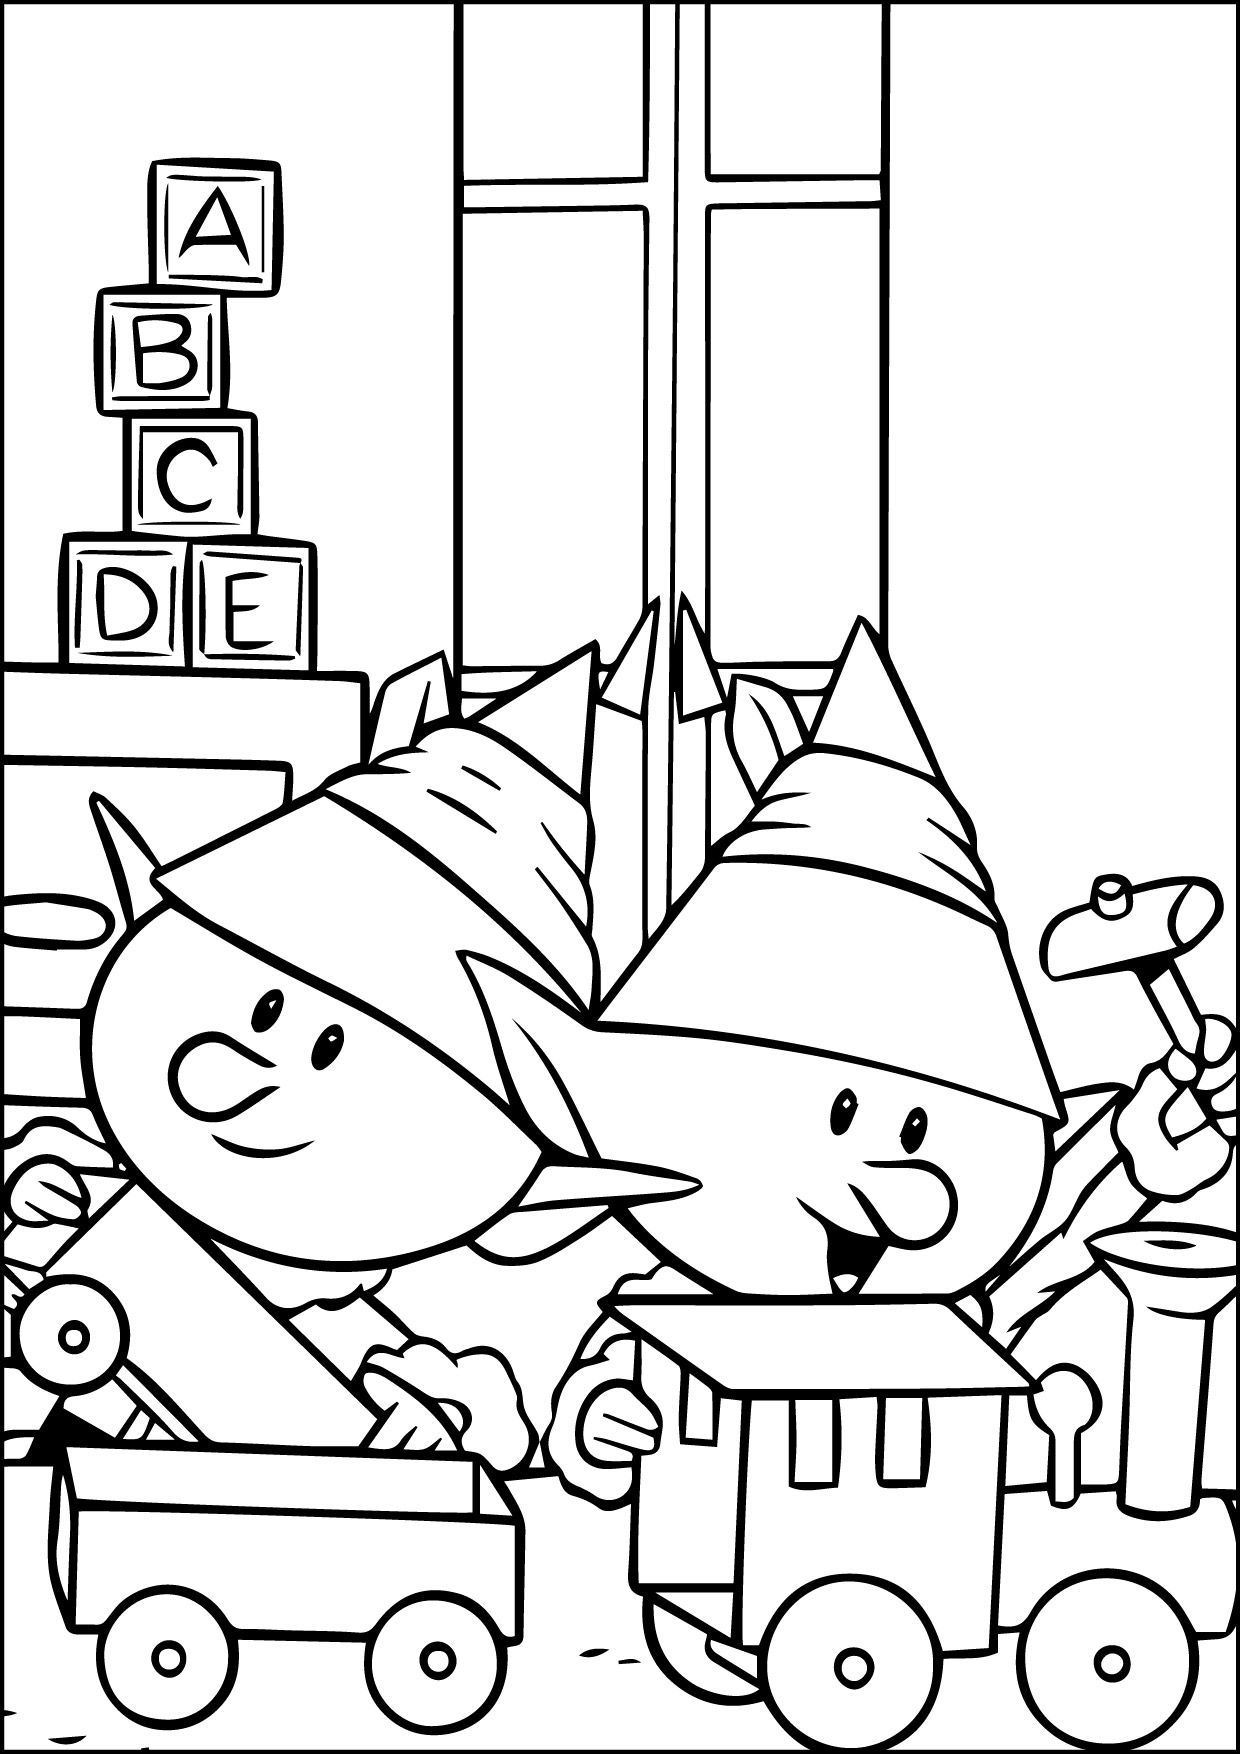 Coloring Page 17 09 01